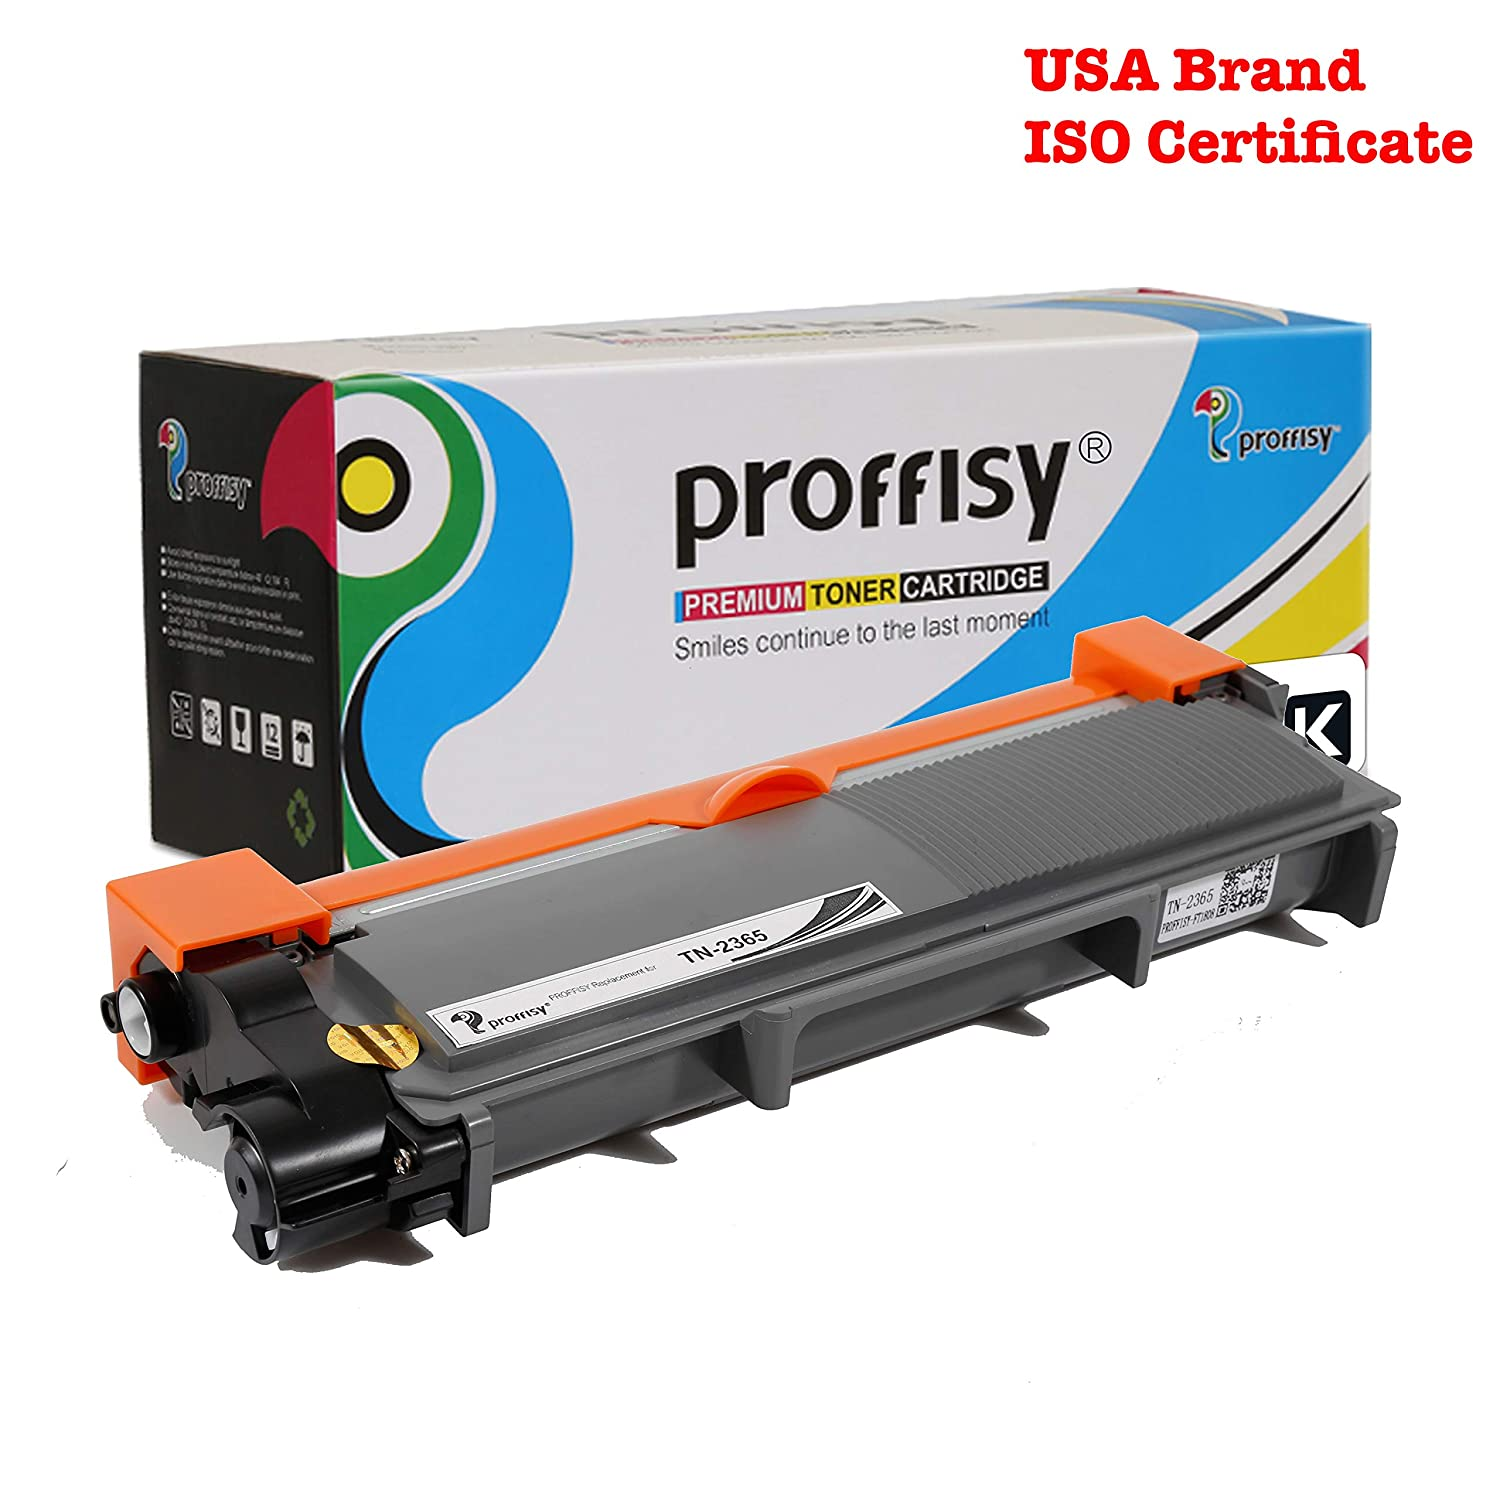 Proffisy TN 2365 for Brother TN-2365 Toner Cartridge